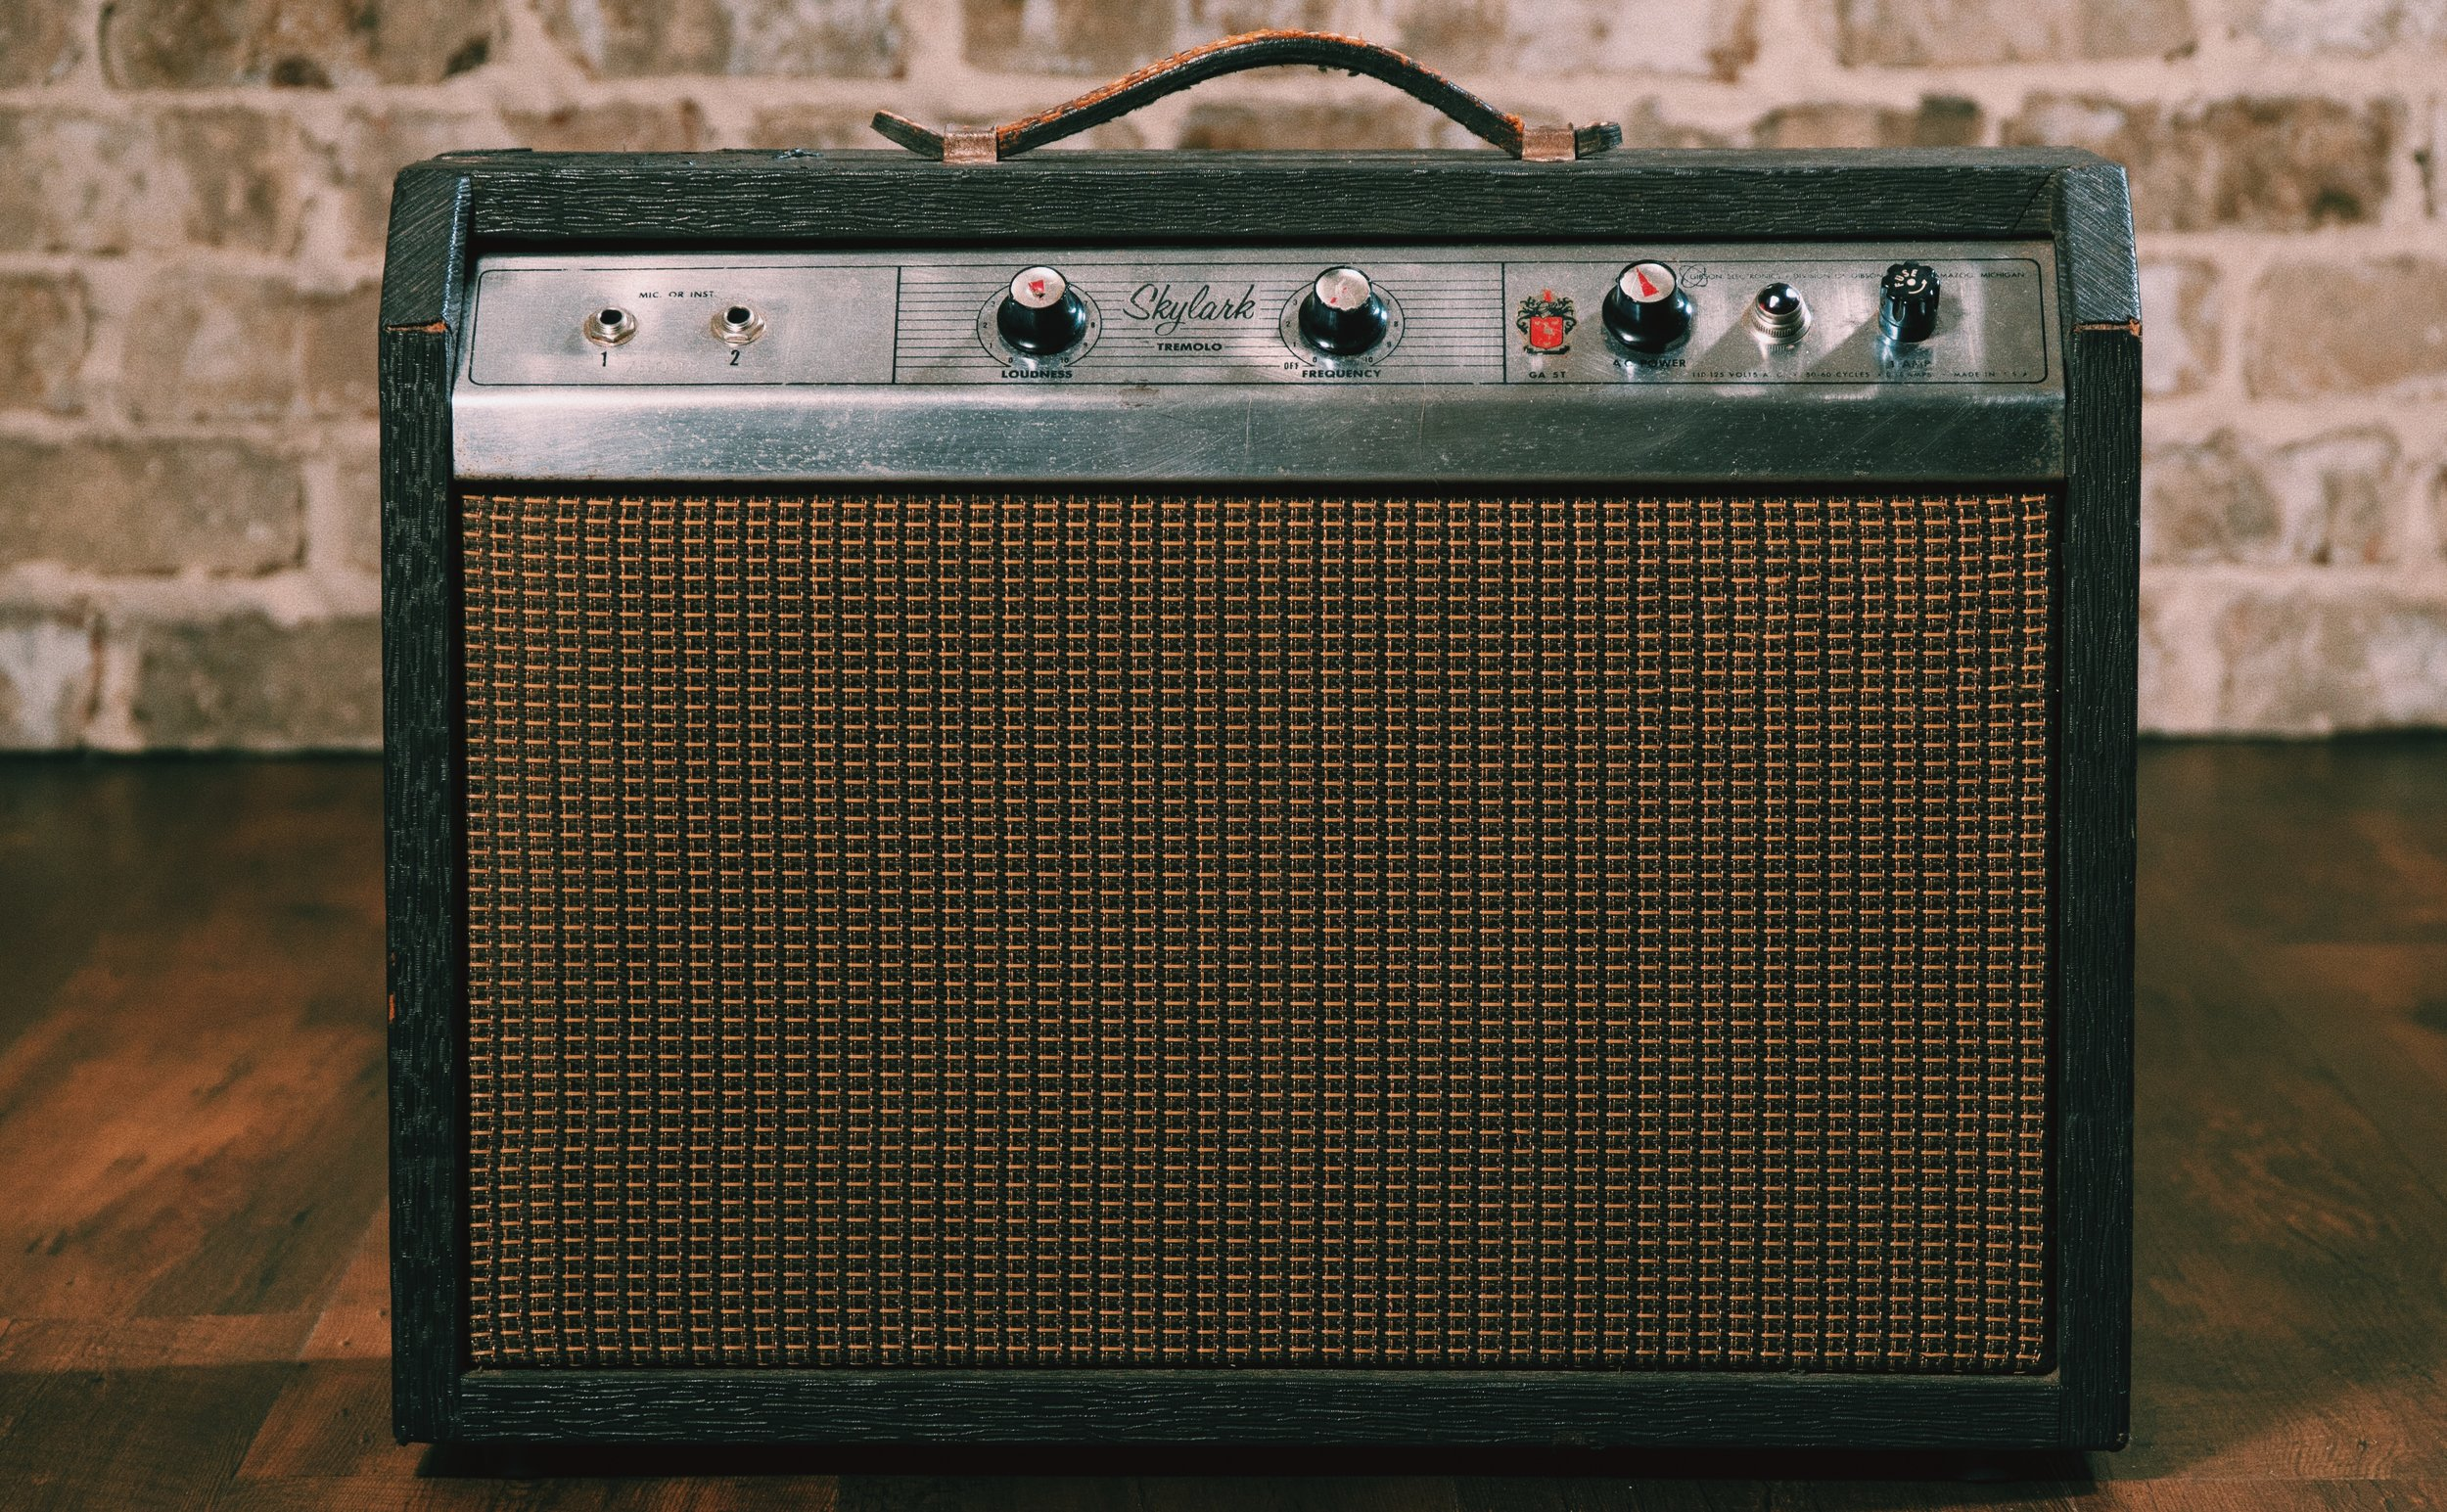 64 SKYLARK - This little amp has vibe, and one volume knob…which is all the way up.